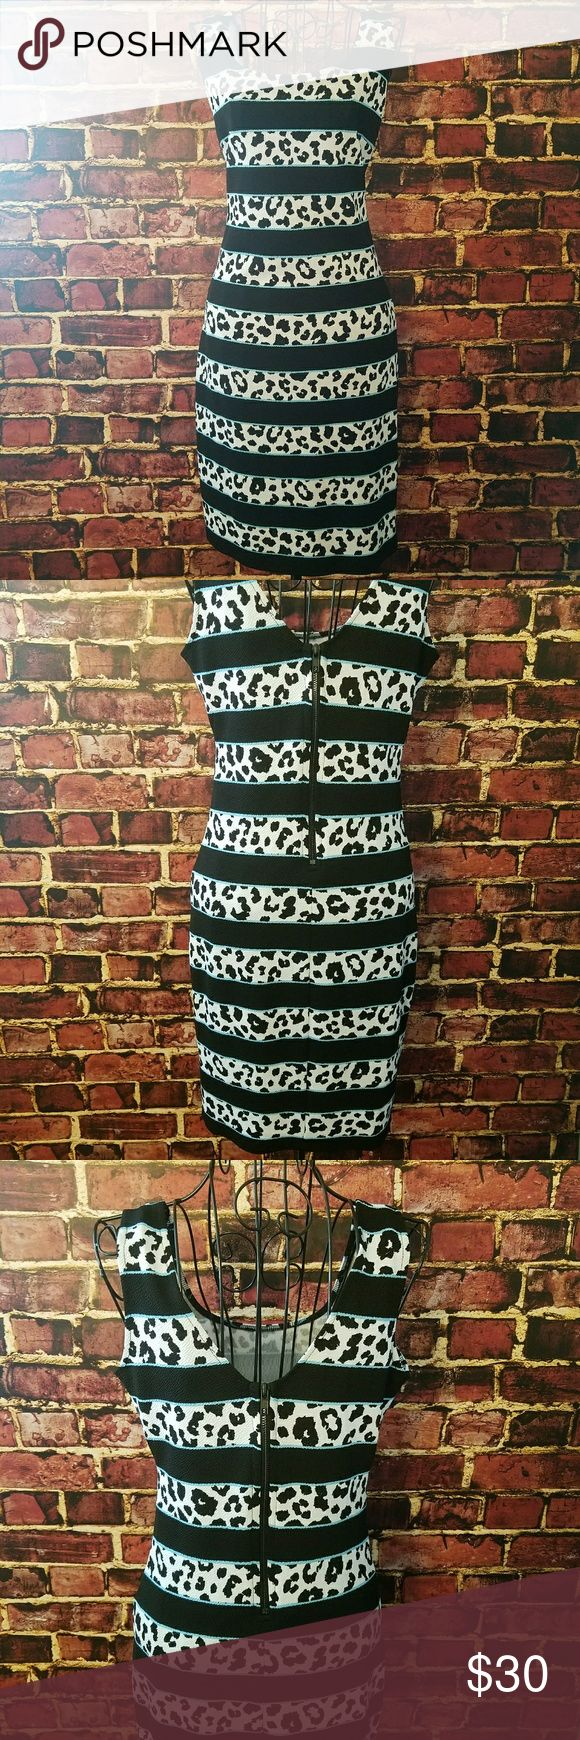 Bar lll Striped Leopard print dress Stylish and sexy animal print summer dress by Bar lll.  Great option for date night, special occasion or vacation. Bodycon. Half zipper in back. Stretchy.  Lightweight.  Polyester/Spandex blend.  Great condition. Bar III Dresses